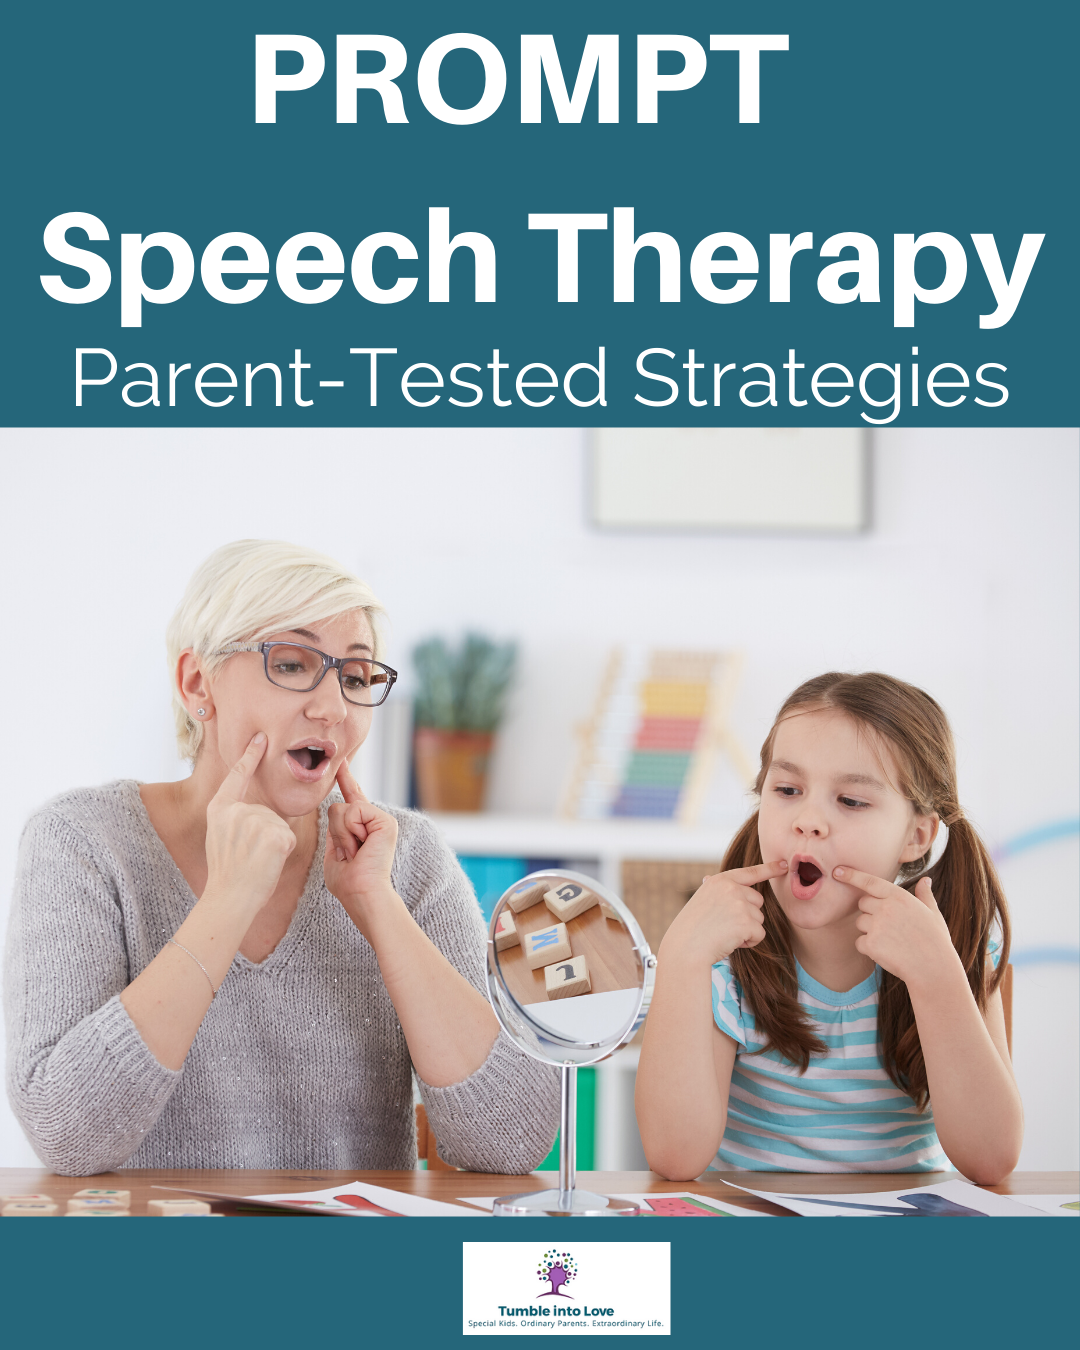 Prompt Speech Therapy Review